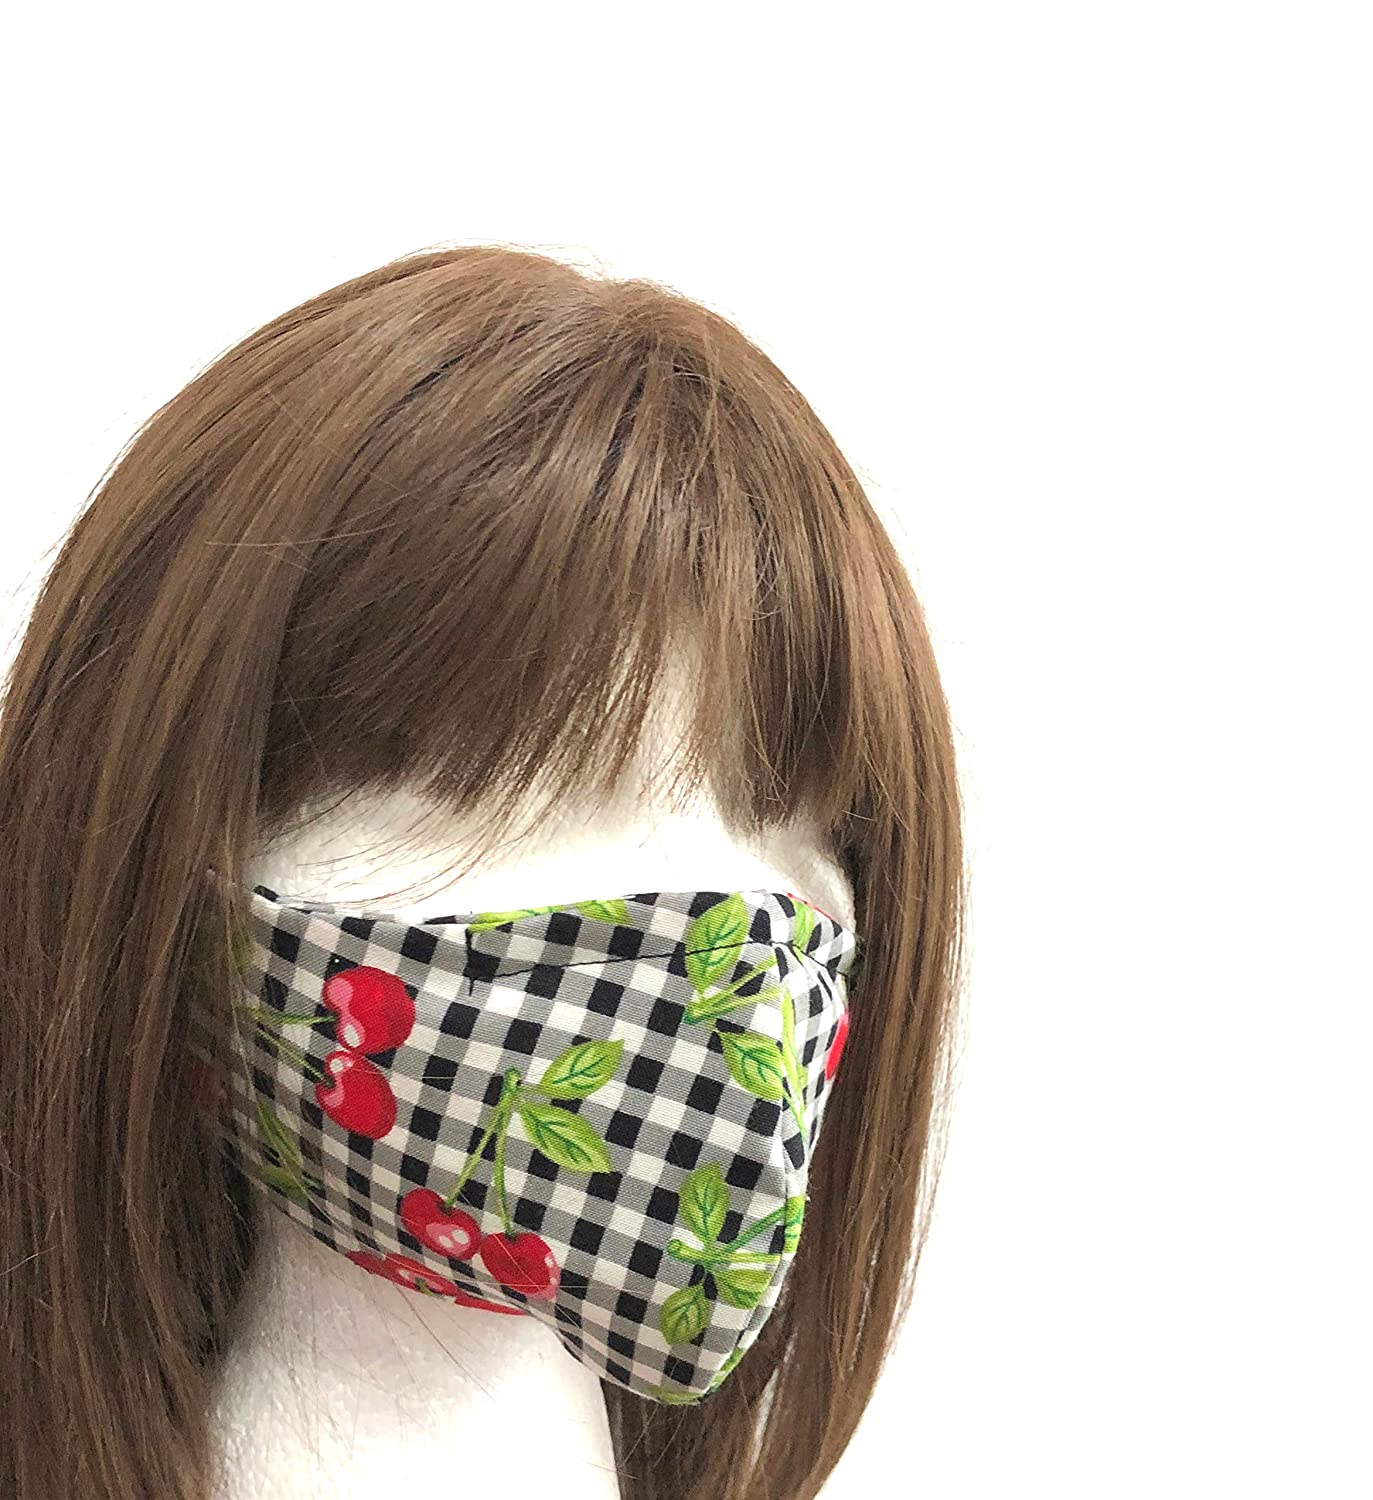 surgical cotton mask